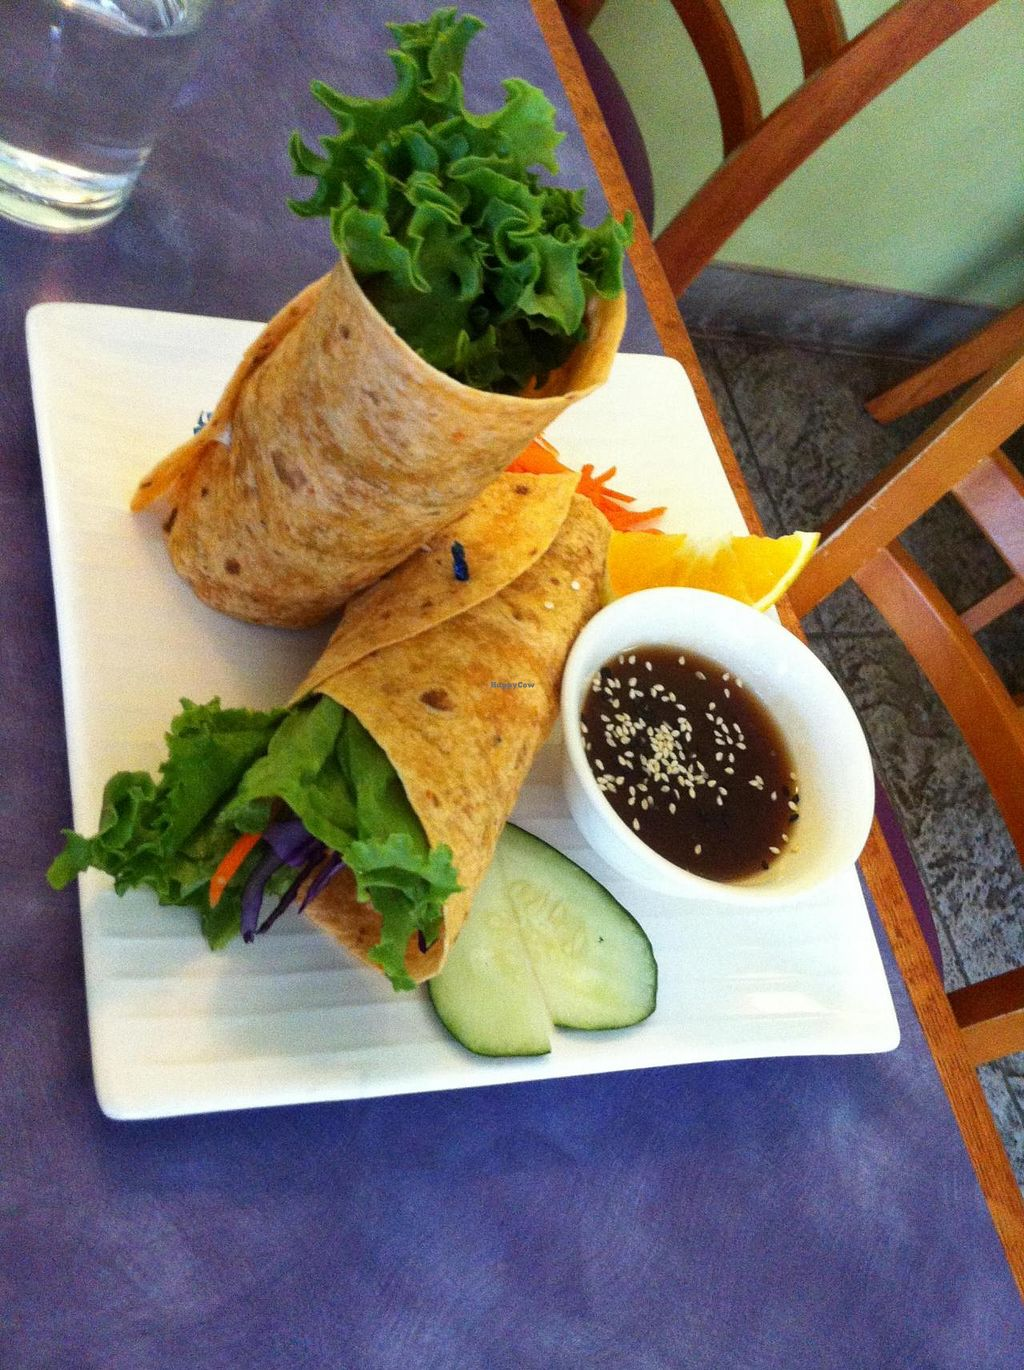 """Photo of Sweet Lemon Vegan Bistro  by <a href=""""/members/profile/Posi%20Britt"""">Posi Britt</a> <br/>Rainbow wrap! <br/> June 25, 2014  - <a href='/contact/abuse/image/11468/72766'>Report</a>"""